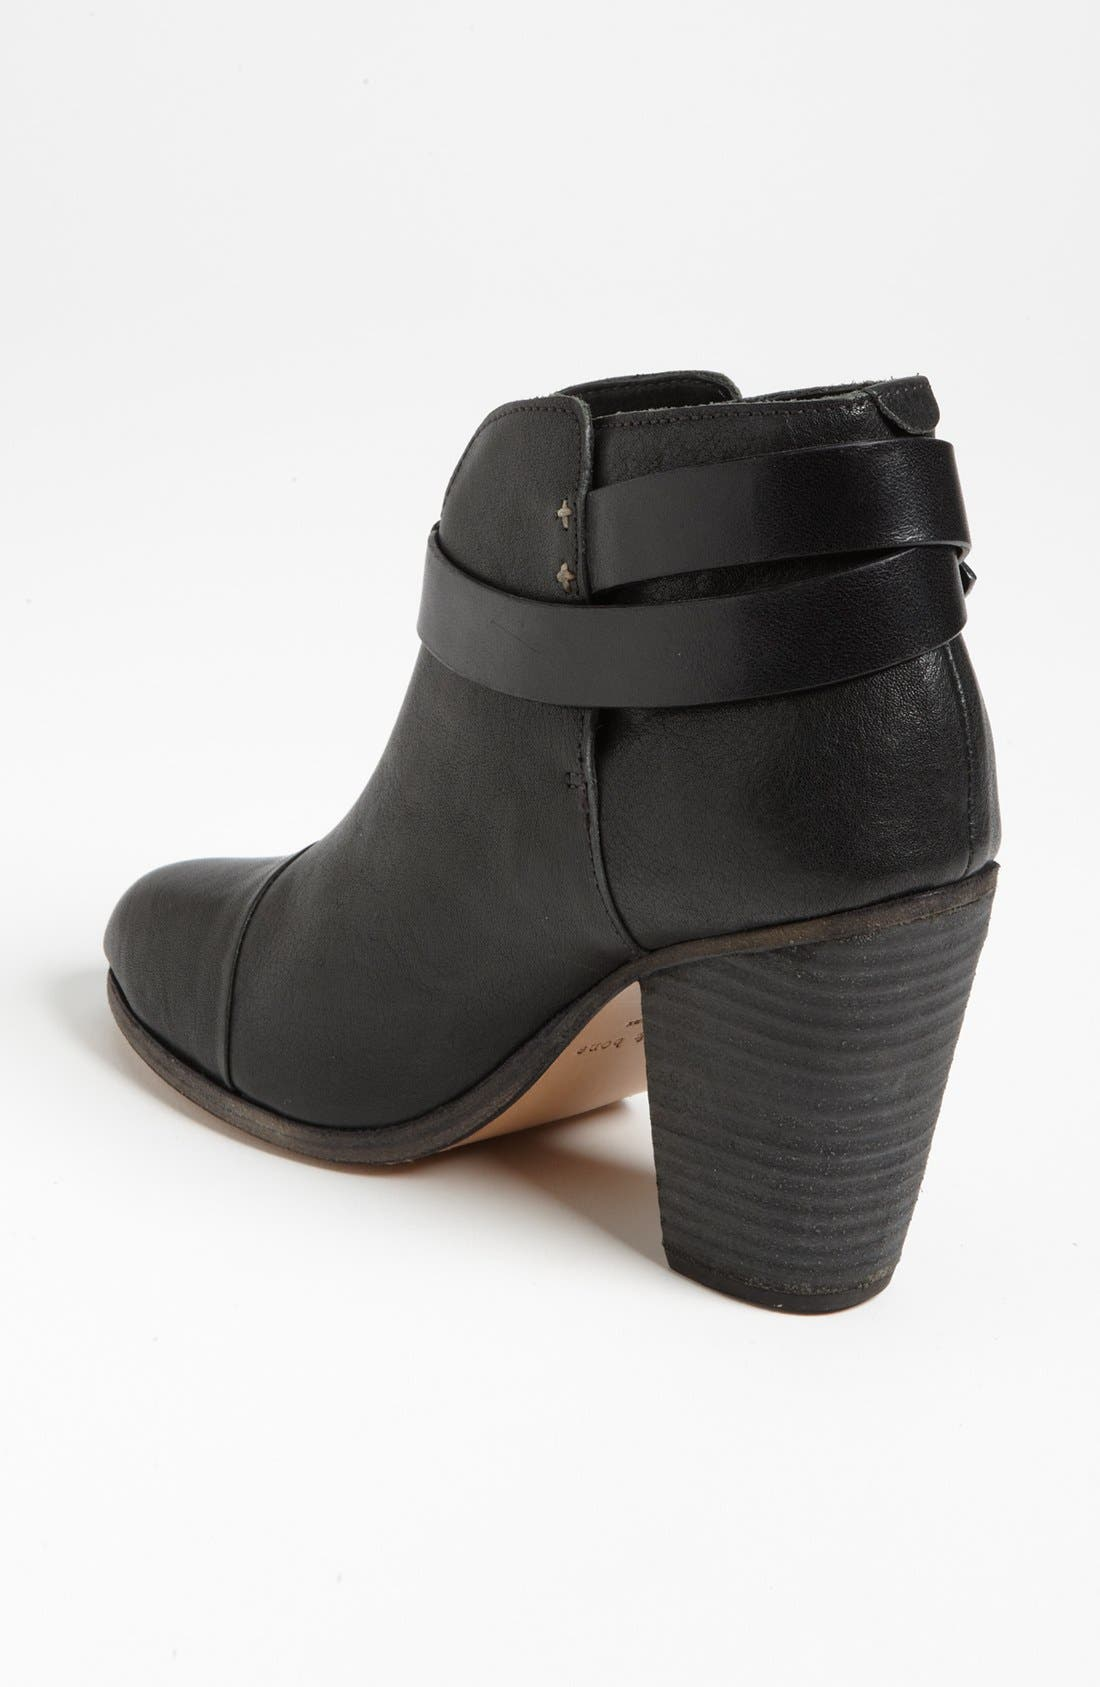 RAG & BONE, 'Harrow' Leather Boot, Alternate thumbnail 7, color, BLACK